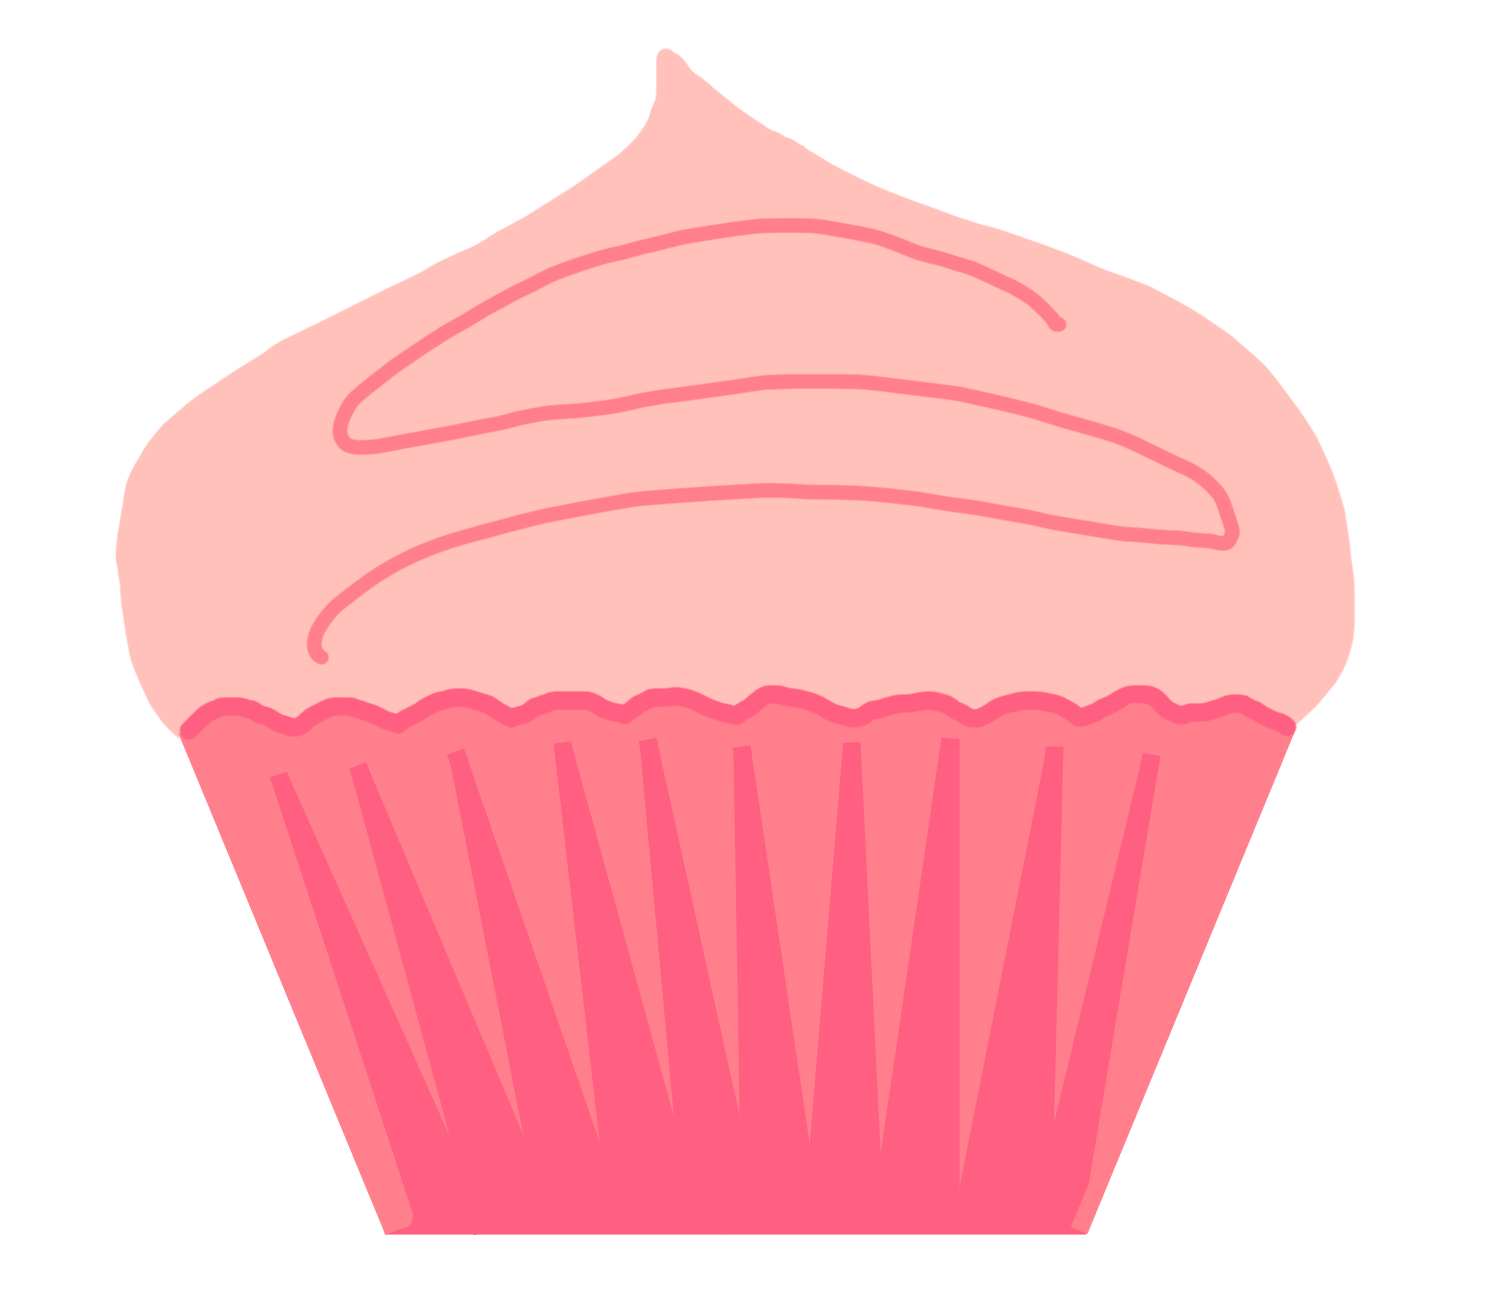 Pice clipart pink cupcake #7